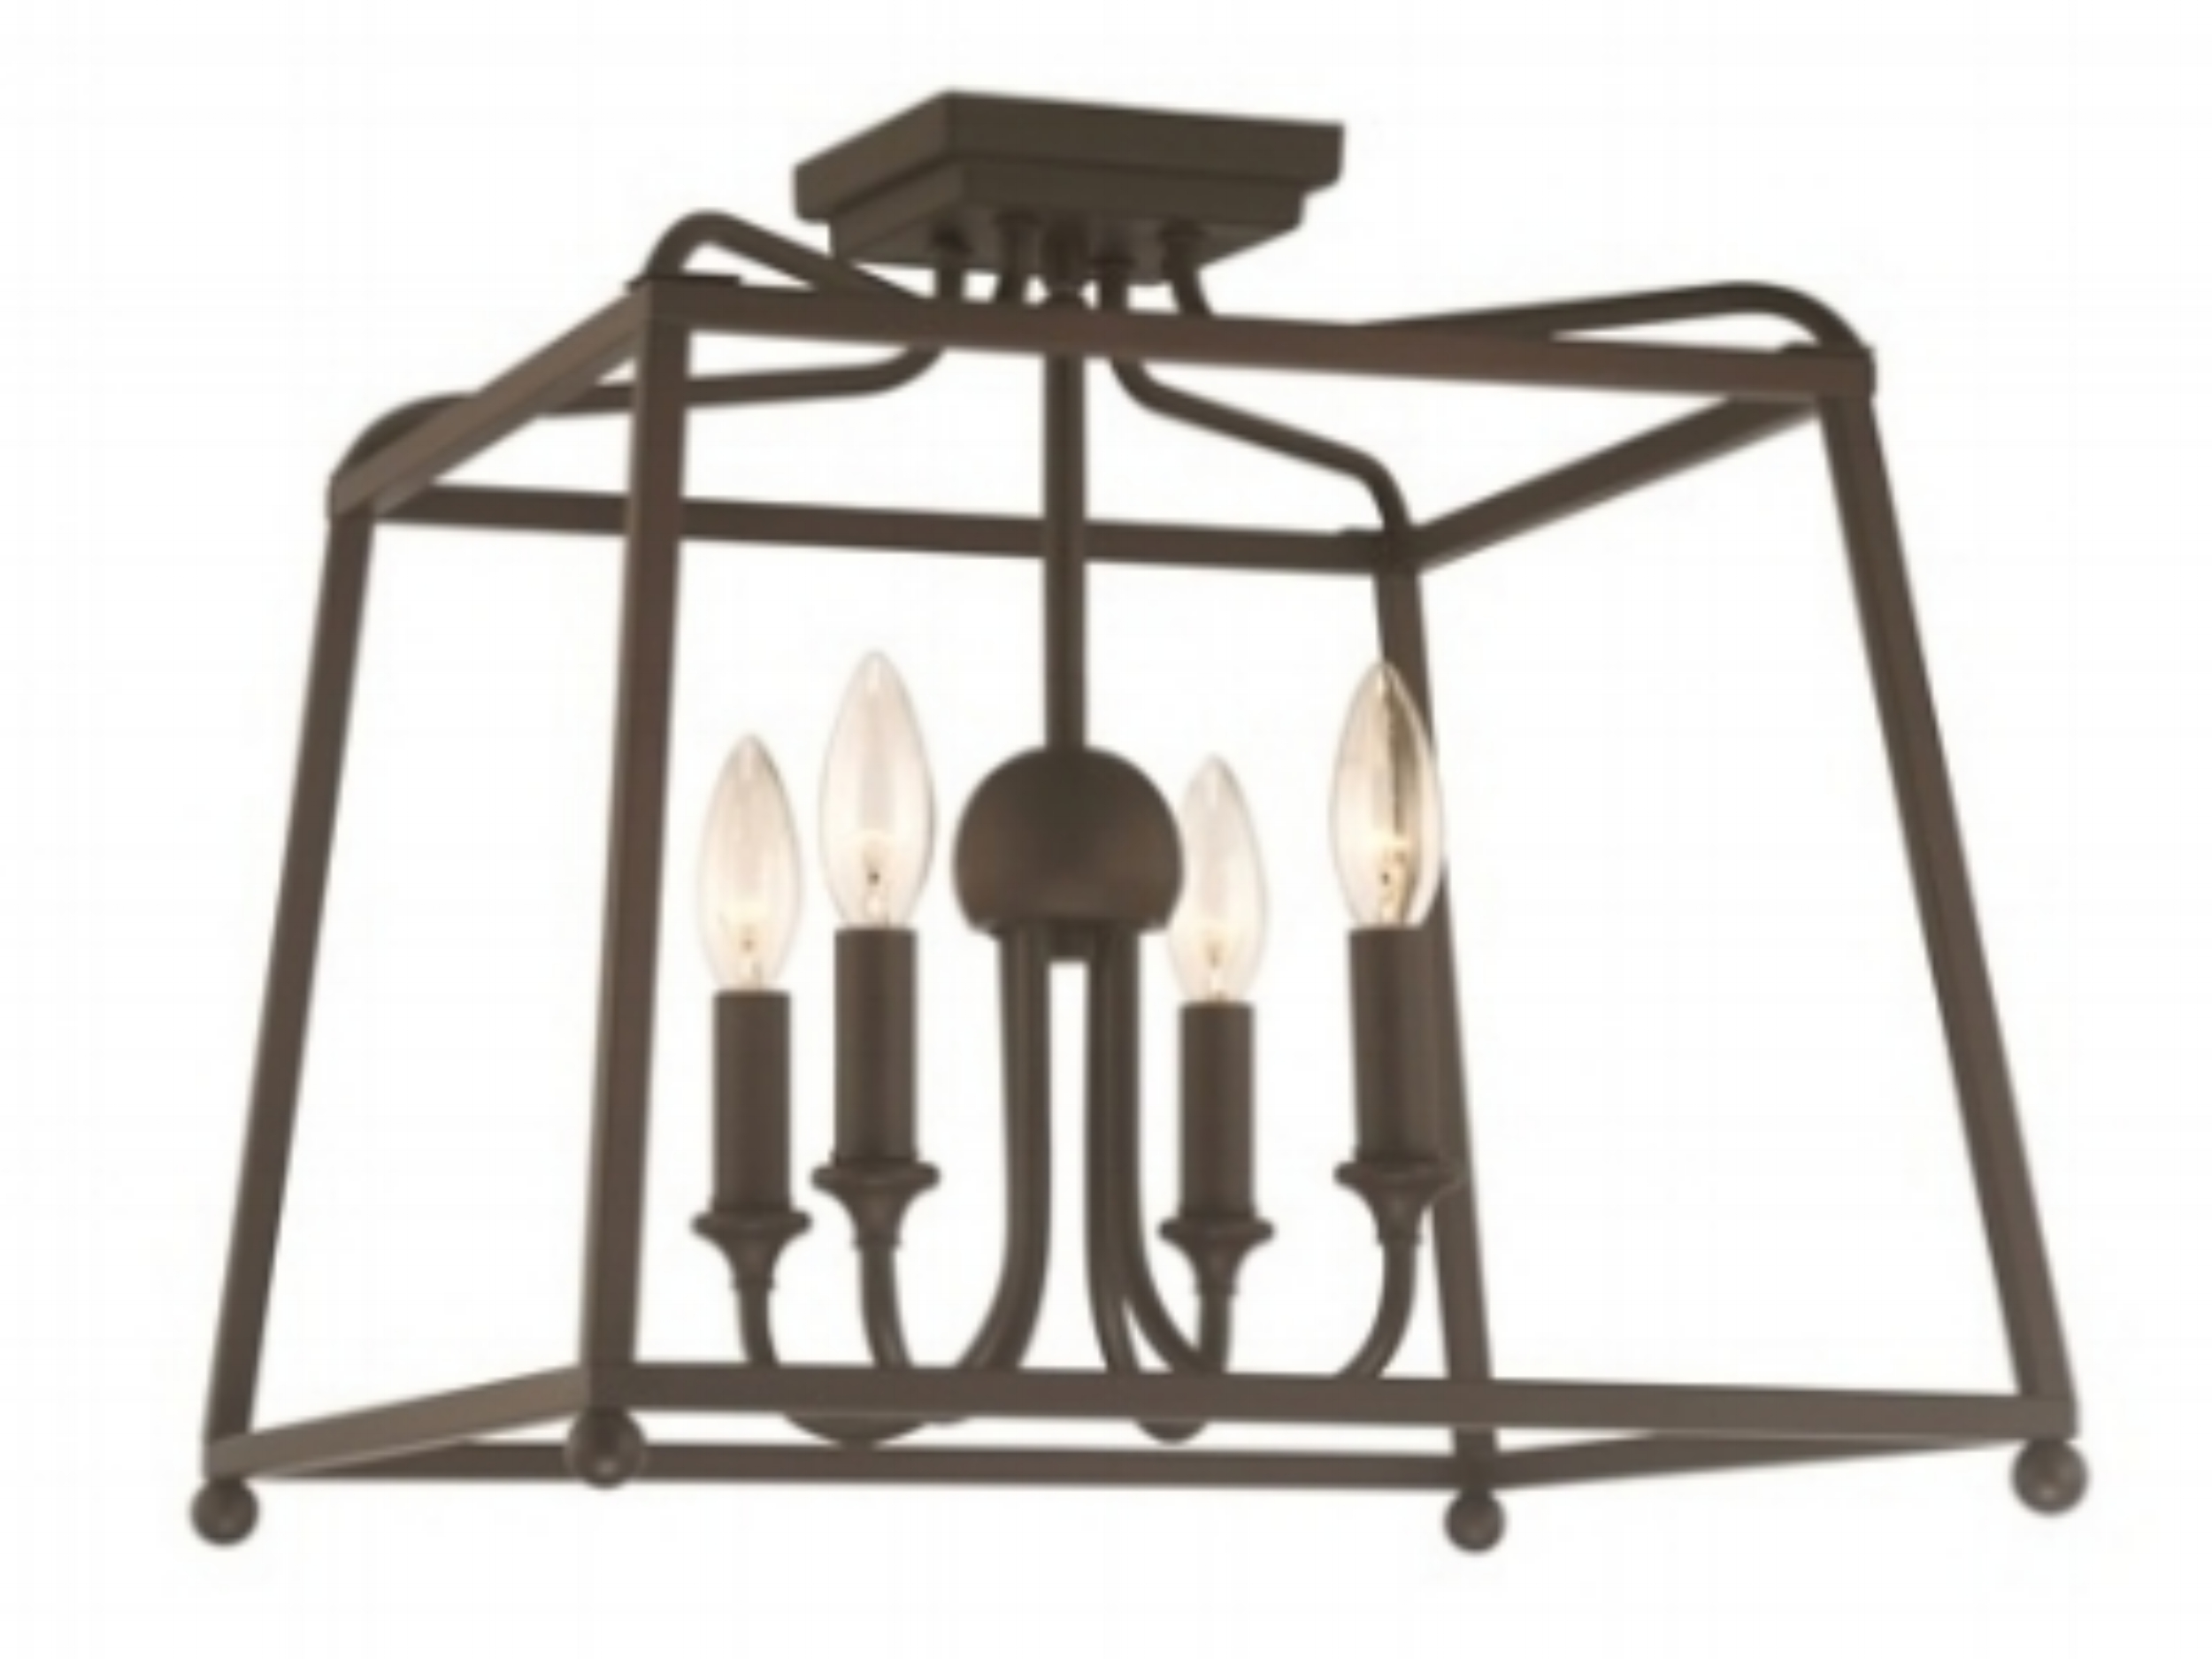 "Product Name:  Crystorama Sylvan 4 Light Dark Bronze Ceiling Mount  Dimensions:  w16 x h15.5 x d16 (in)  Total Number Lights:  4  External Lights:  4  Total Wattage:  240  Bulb Type:  Medium  Material:  Steel  Finish:  Dark Bronze  Canopy Size:  4.75"" x 1"" x 4.75"" (in)  Item Weight:  3  Package Weight:  5  Shade Size:  3"" x 4"" x 4.5"" (in) Empire"